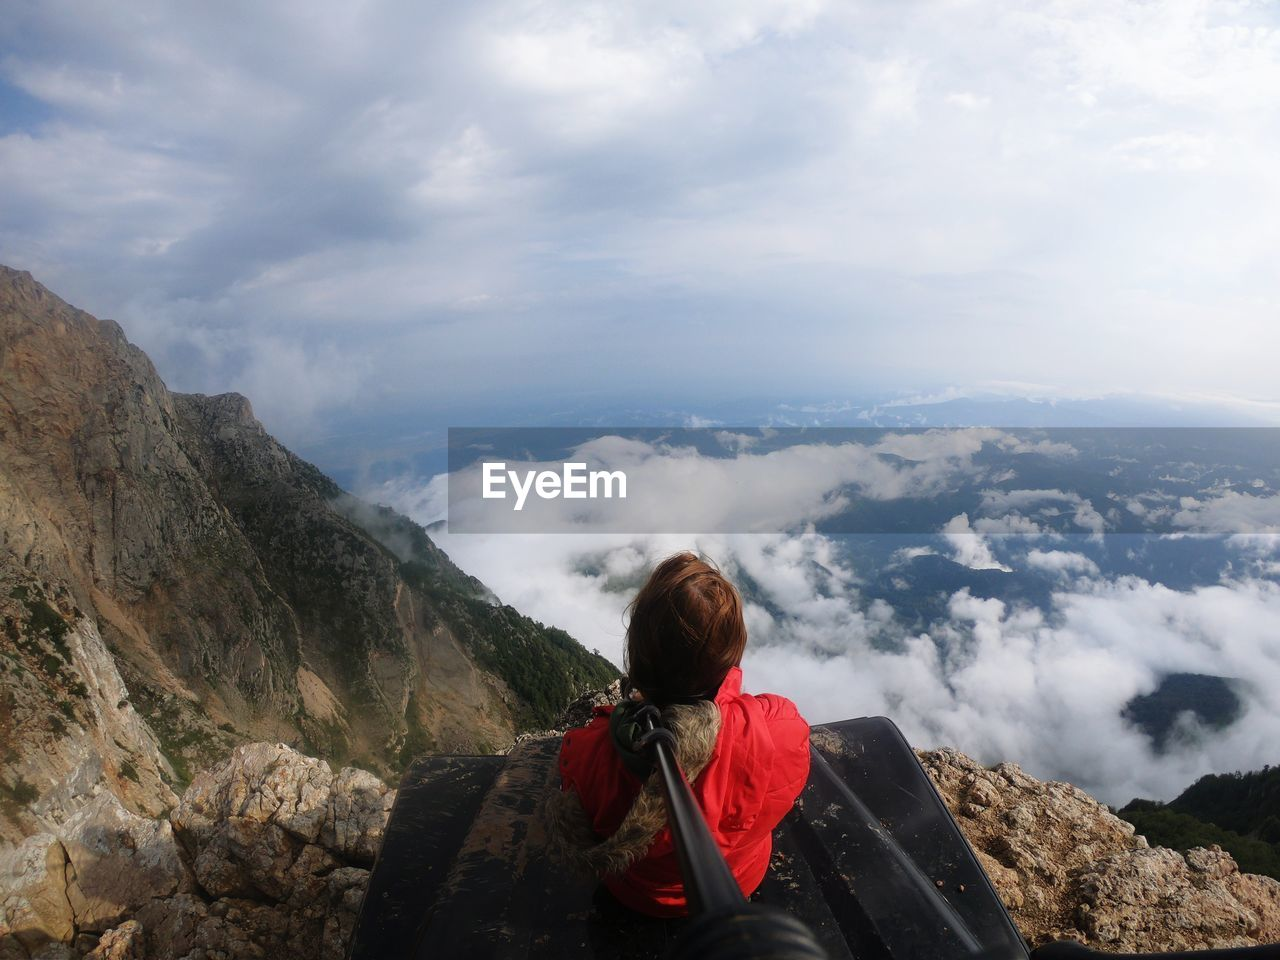 mountain, cloud - sky, real people, adventure, one person, leisure activity, lifestyles, hiking, scenics - nature, beauty in nature, sky, backpack, nature, rear view, vacations, trip, holiday, rock, exploration, mountain range, outdoors, looking at view